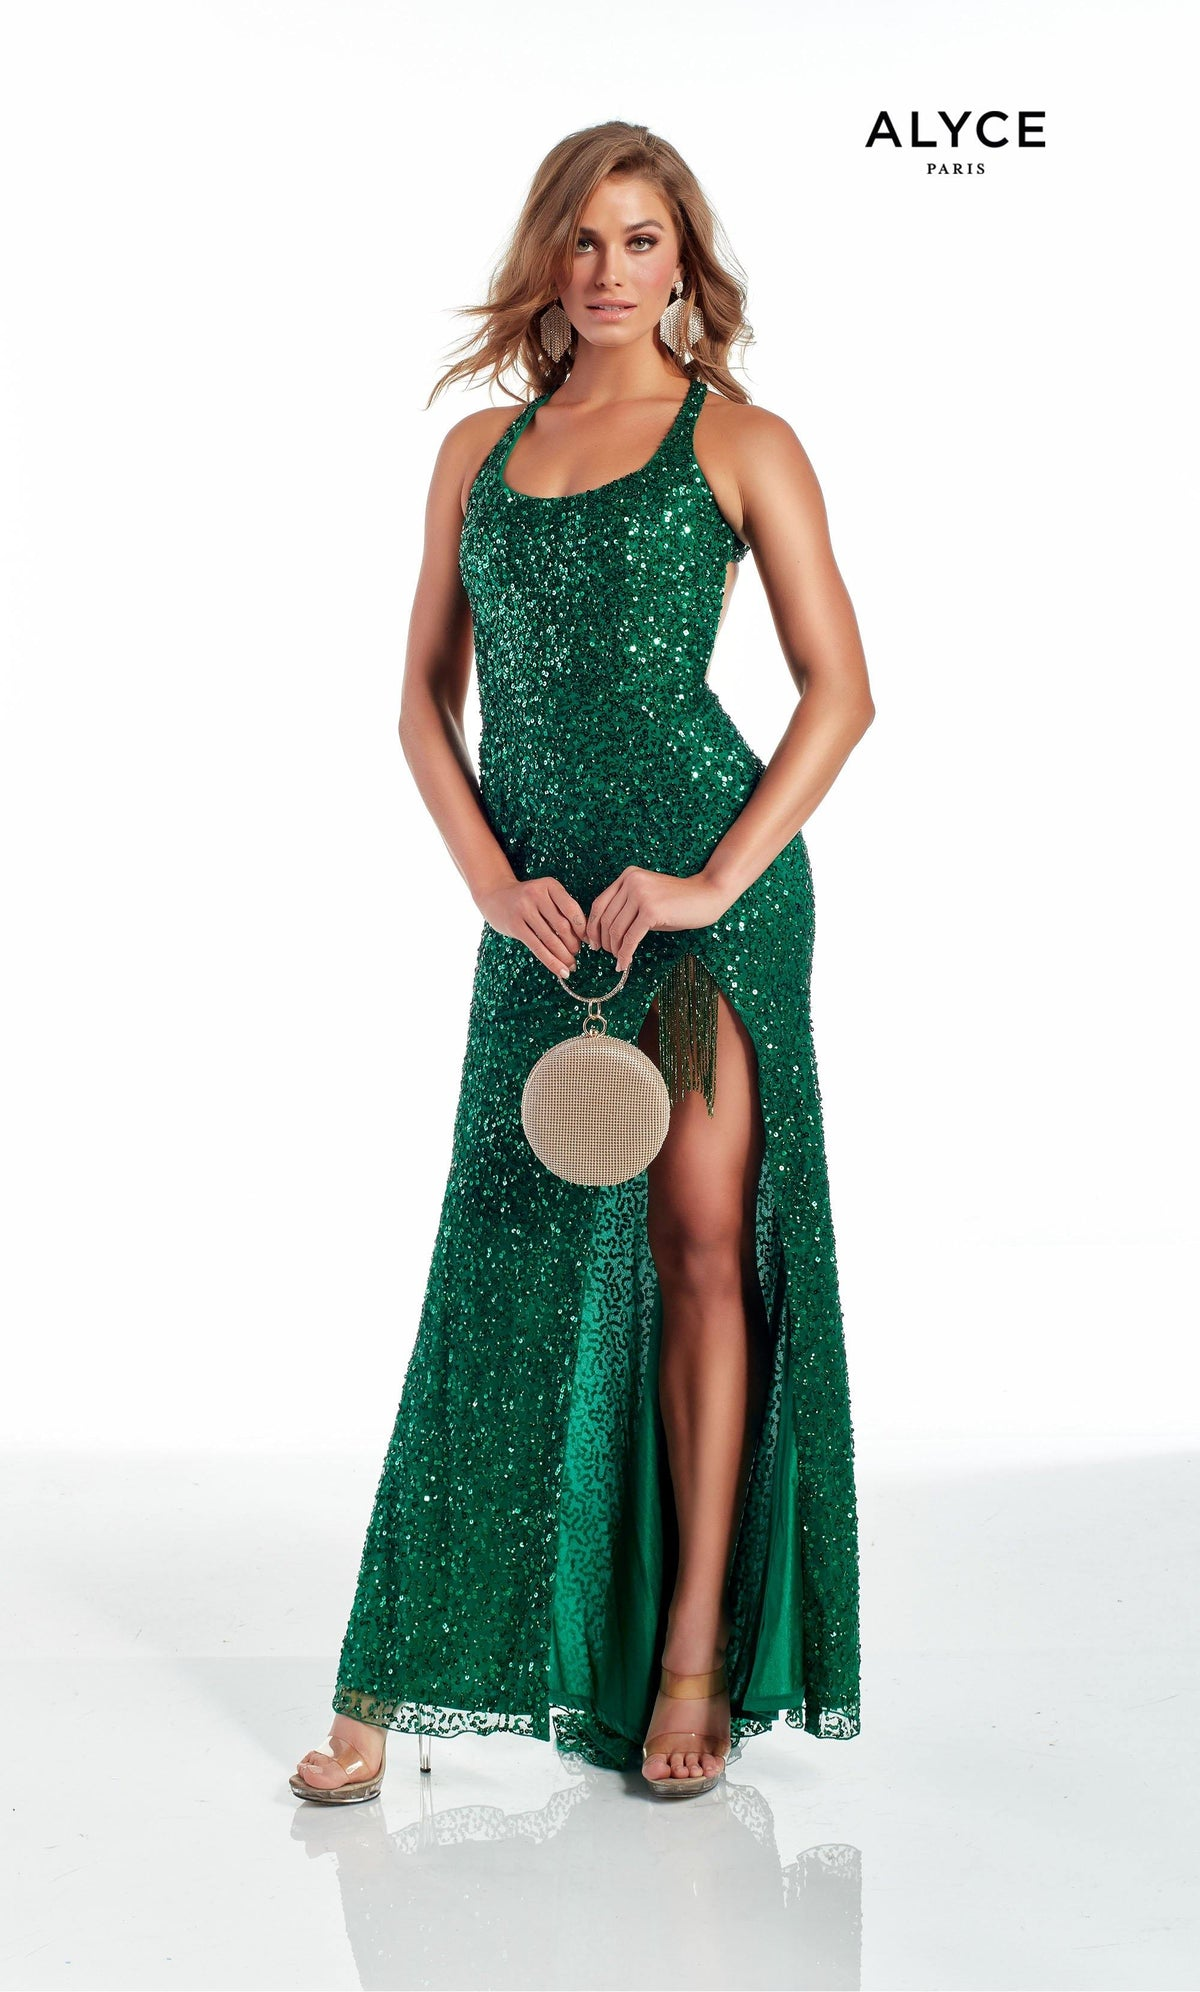 Emerald Green hand beaded prom dress with a scoop neck, high slit, and beaded fringe accent